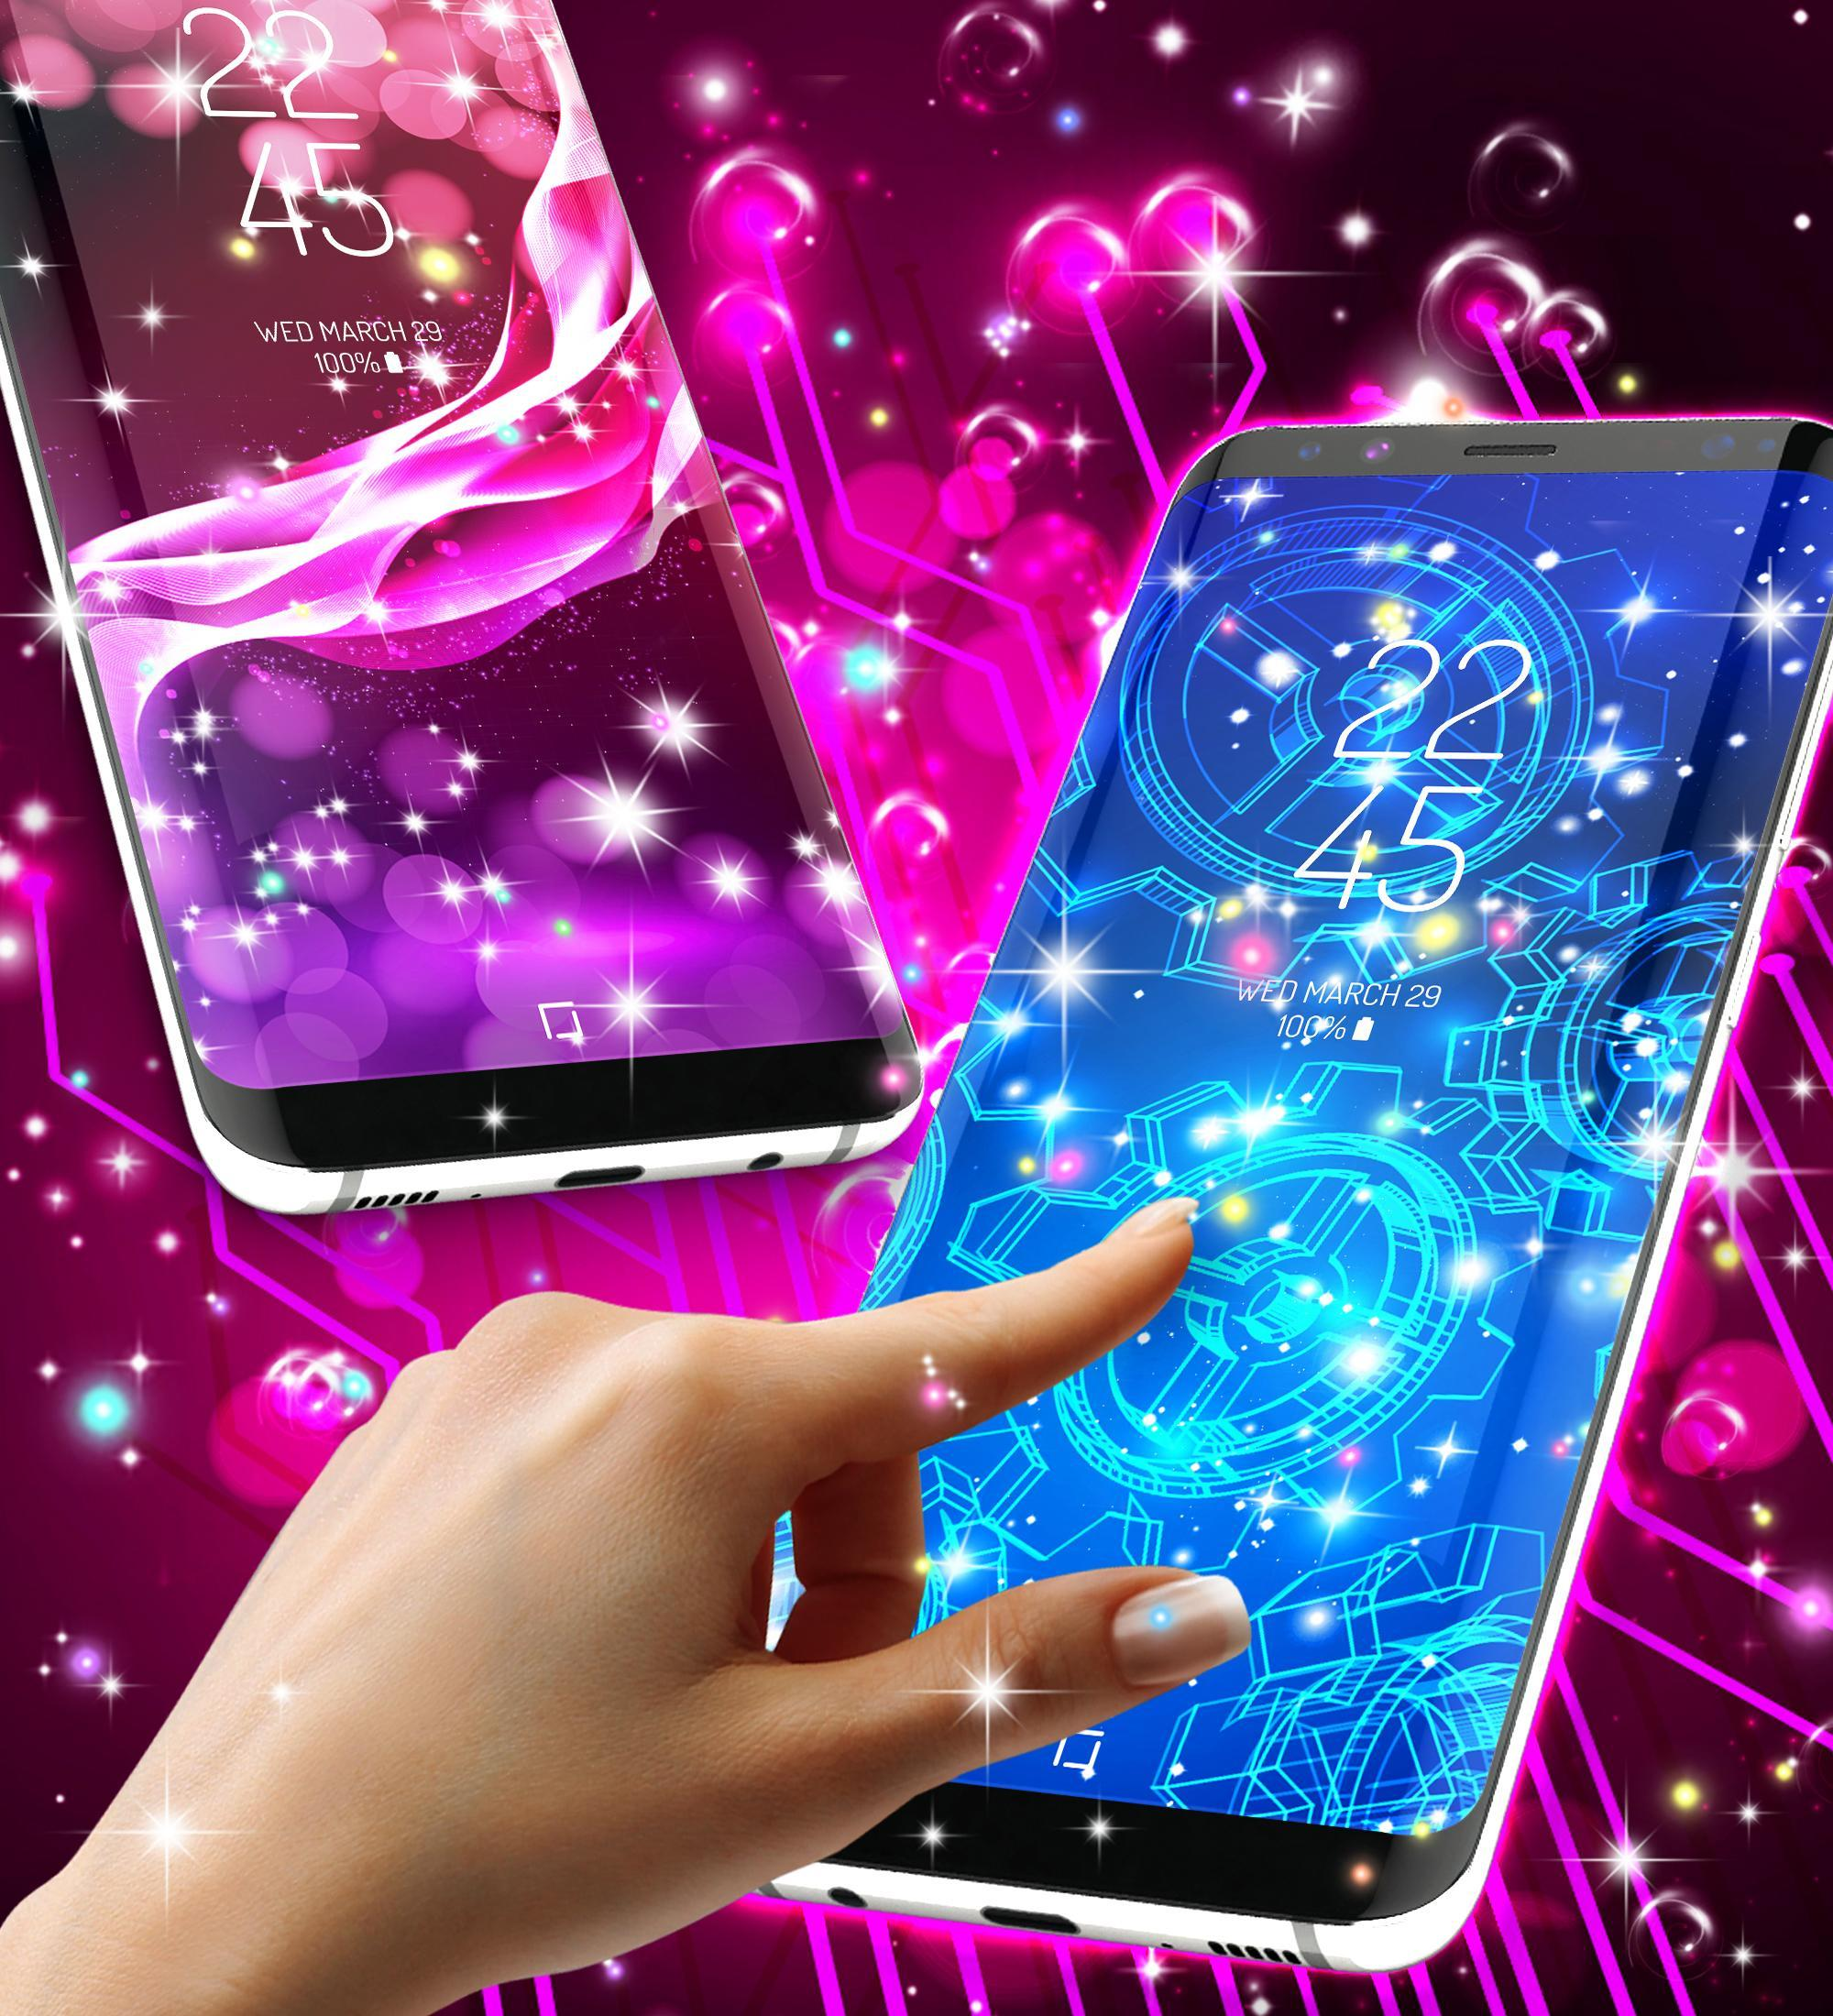 New 2020 live wallpaper for Android - APK Download